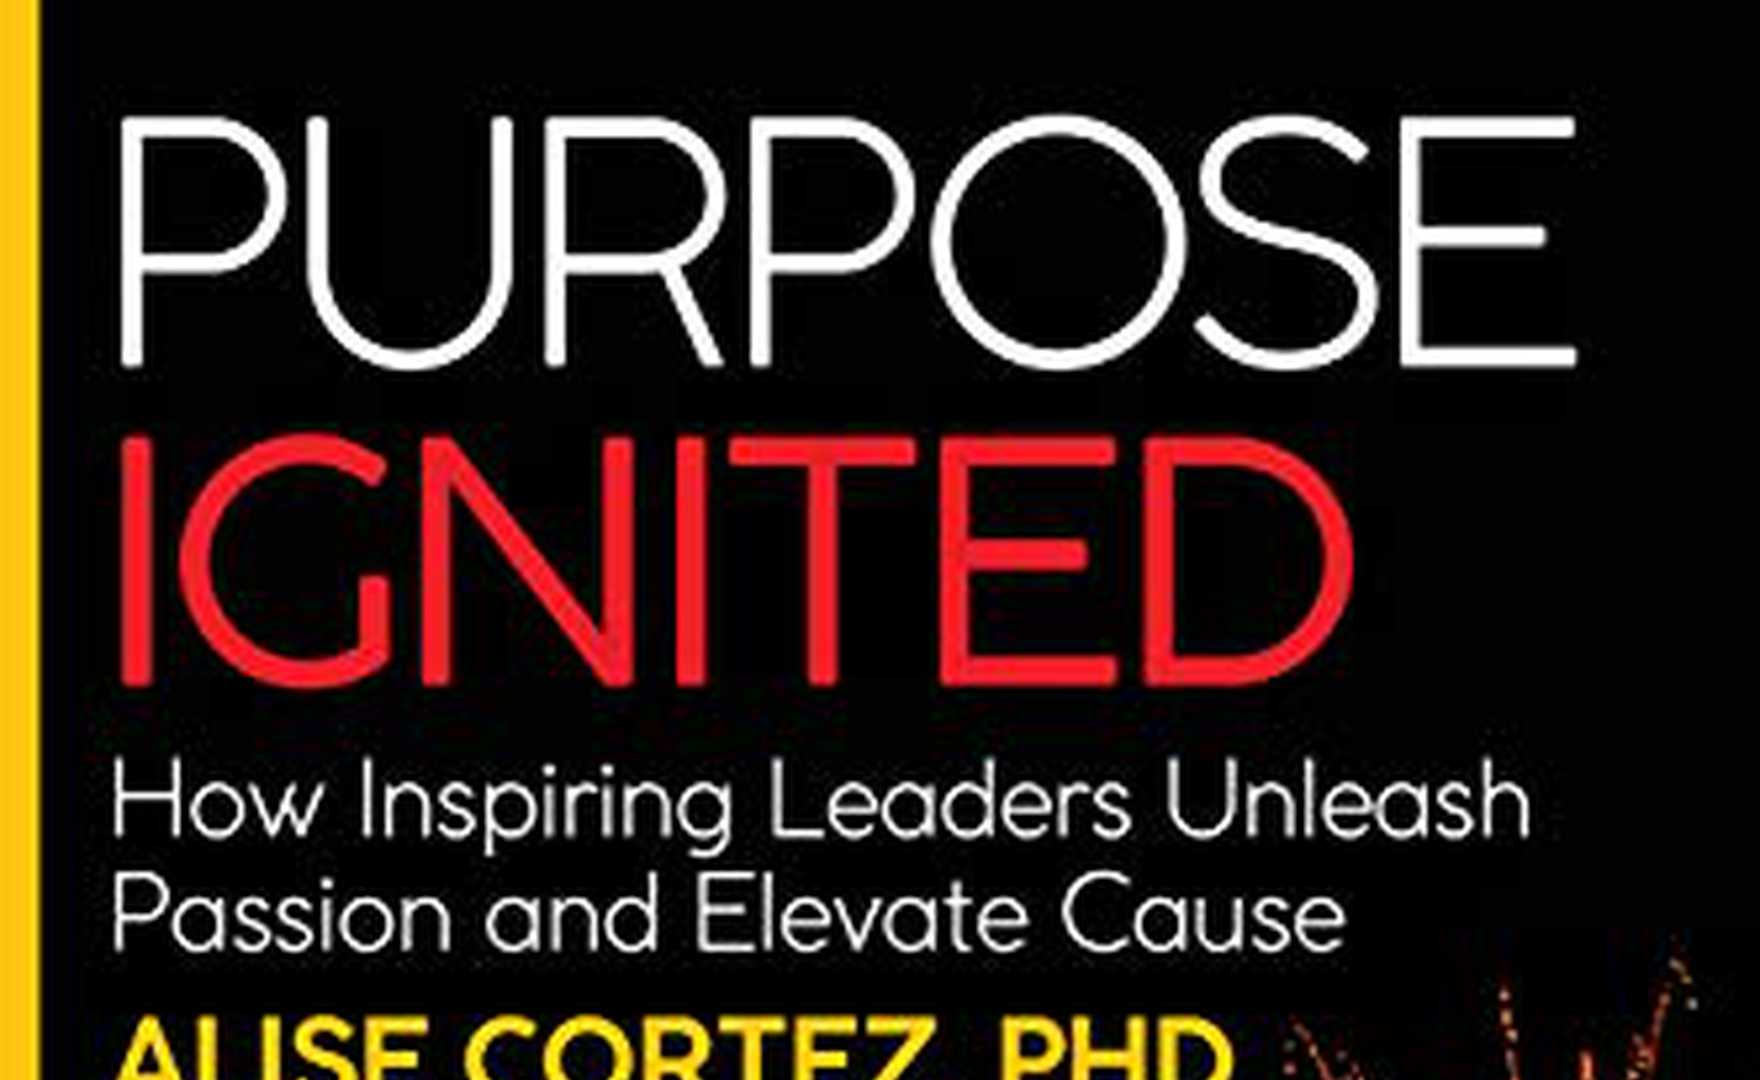 Book review – Purpose Ignited by Alise Cortez